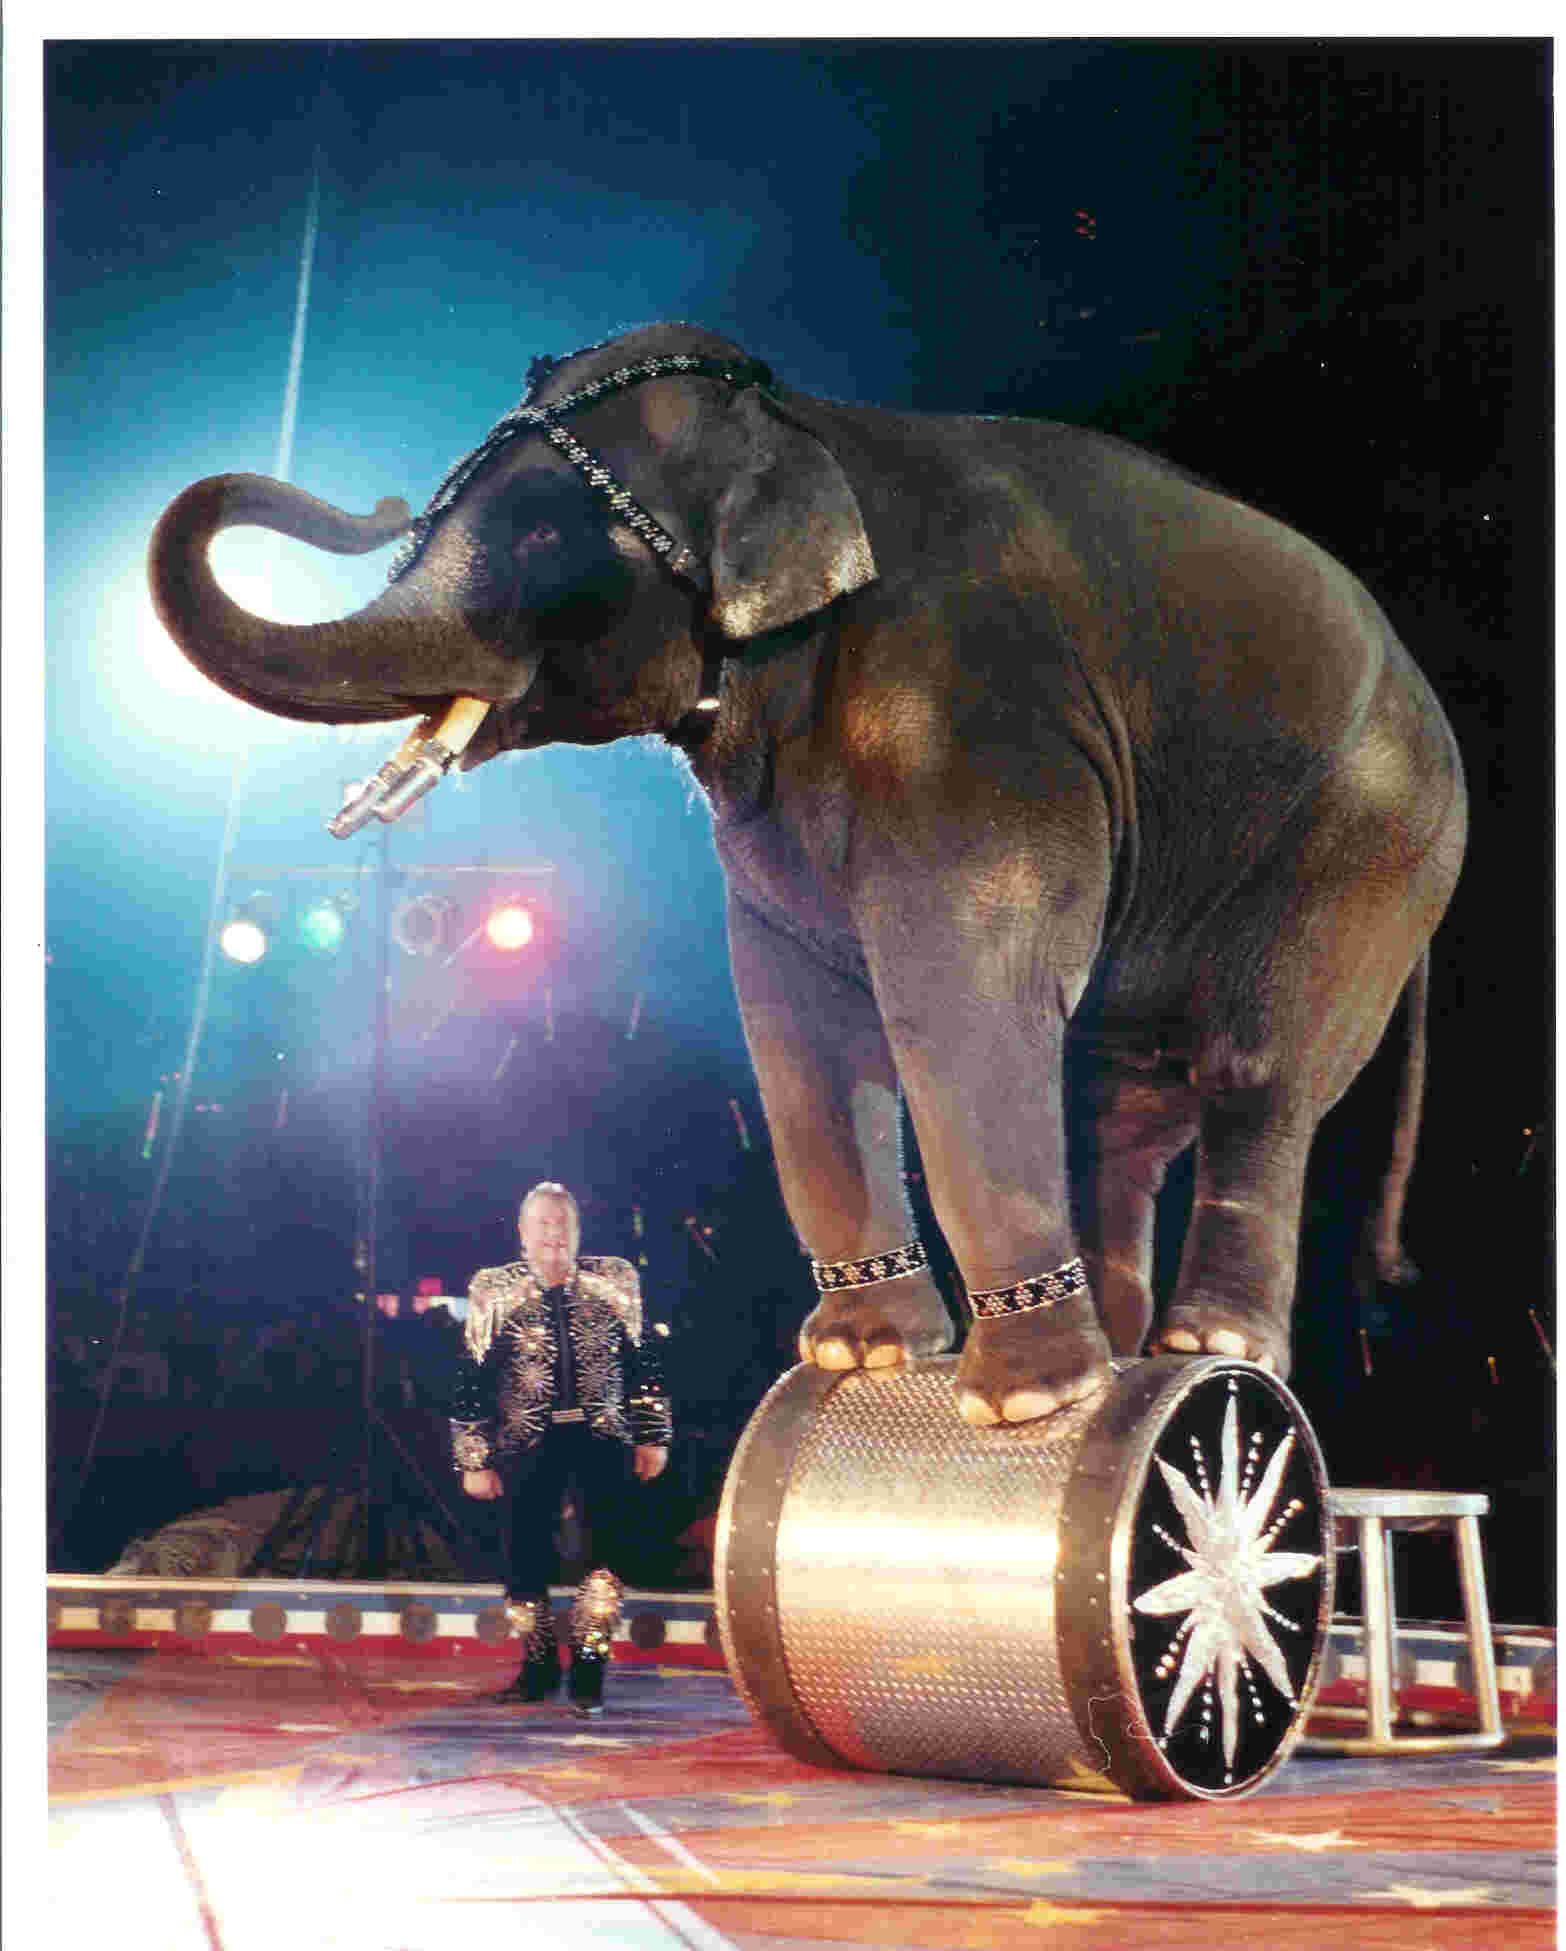 the abuse of circus elephants essay Ban circus animals join or donate to peta or american society for the prevention of cruelty towards animals propose a bill to your congressman to ban.